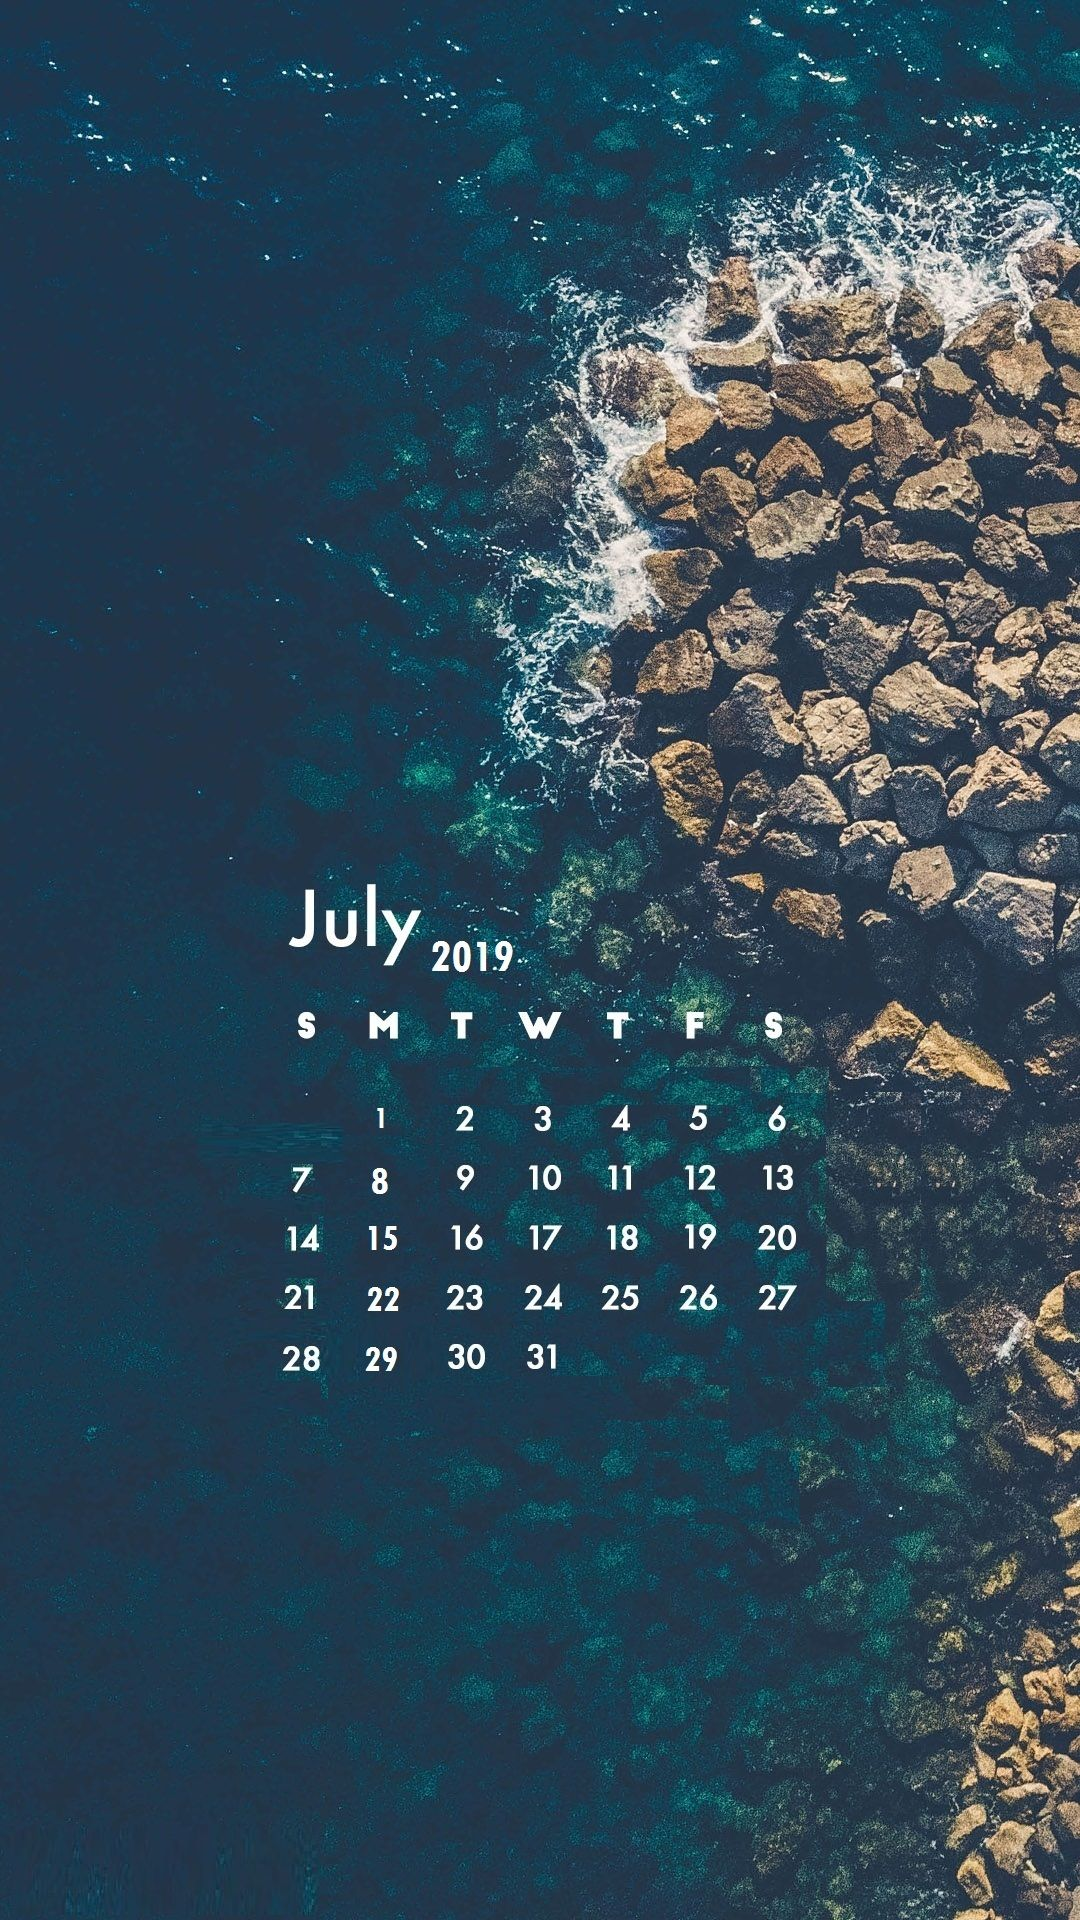 July 2019 iPhone Calendar wallpaper july july2019calendar 1080x1920